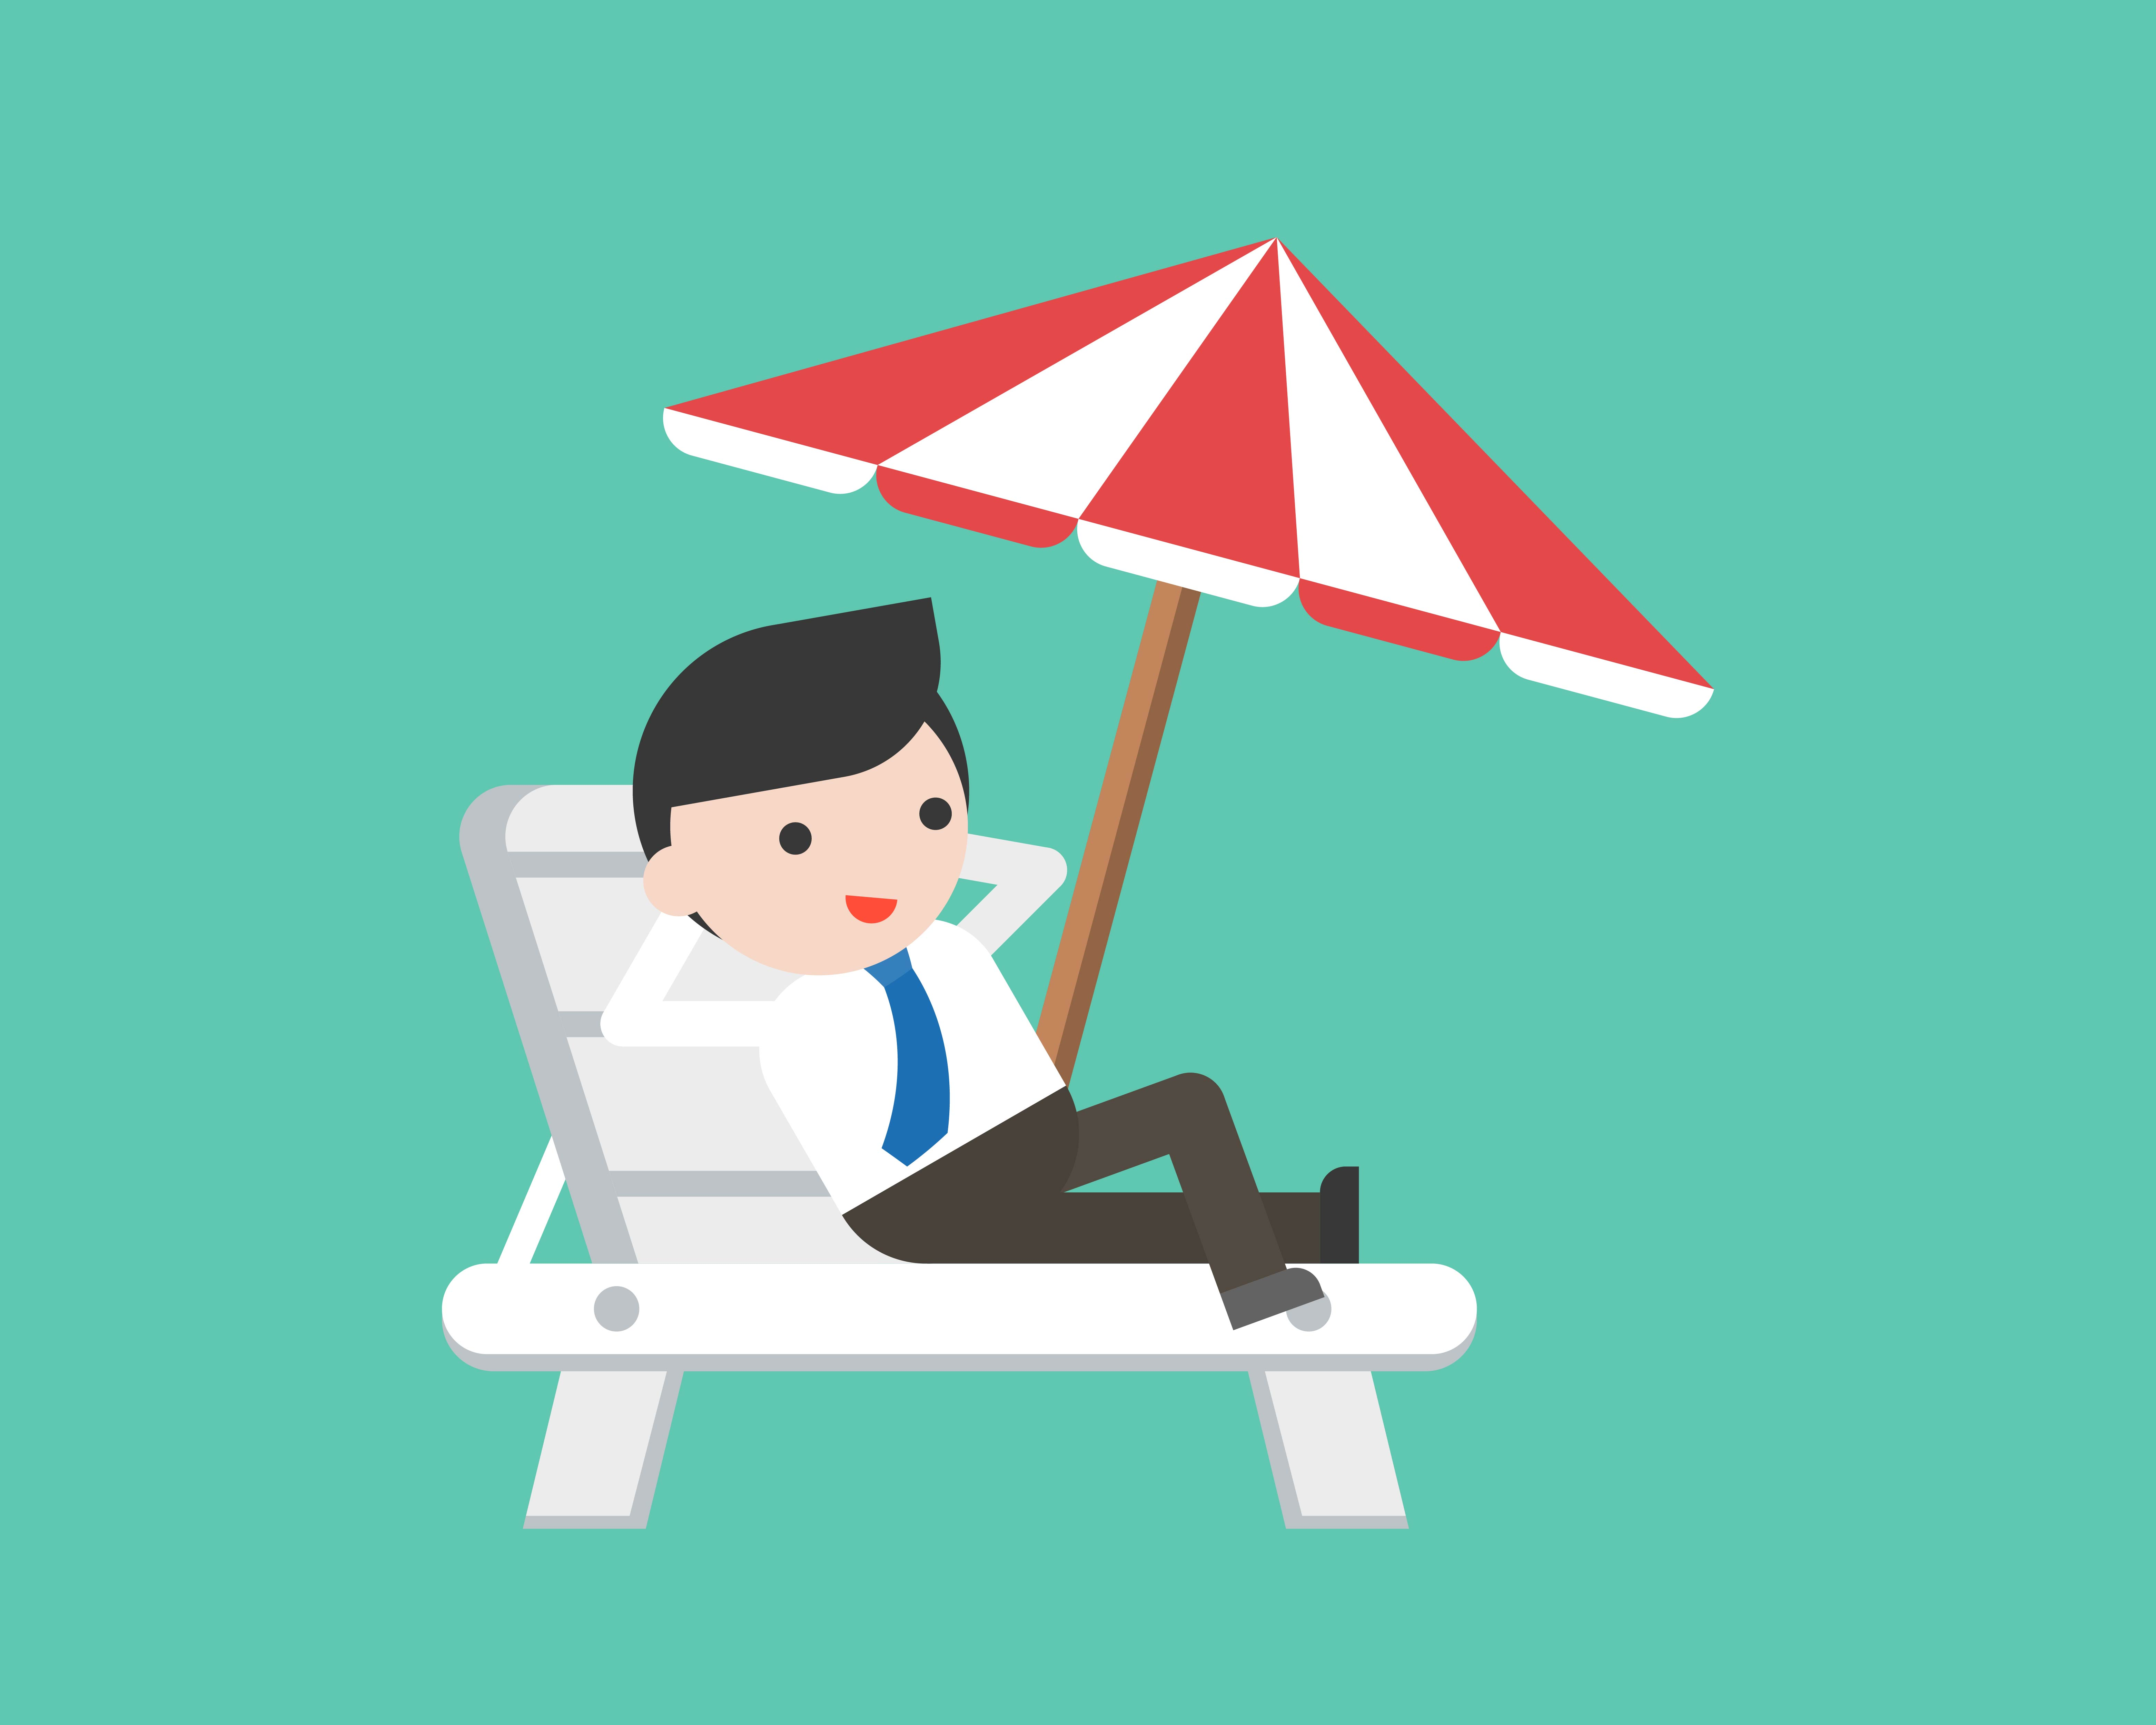 Businessman relaxing on beach chair with umbrella ...